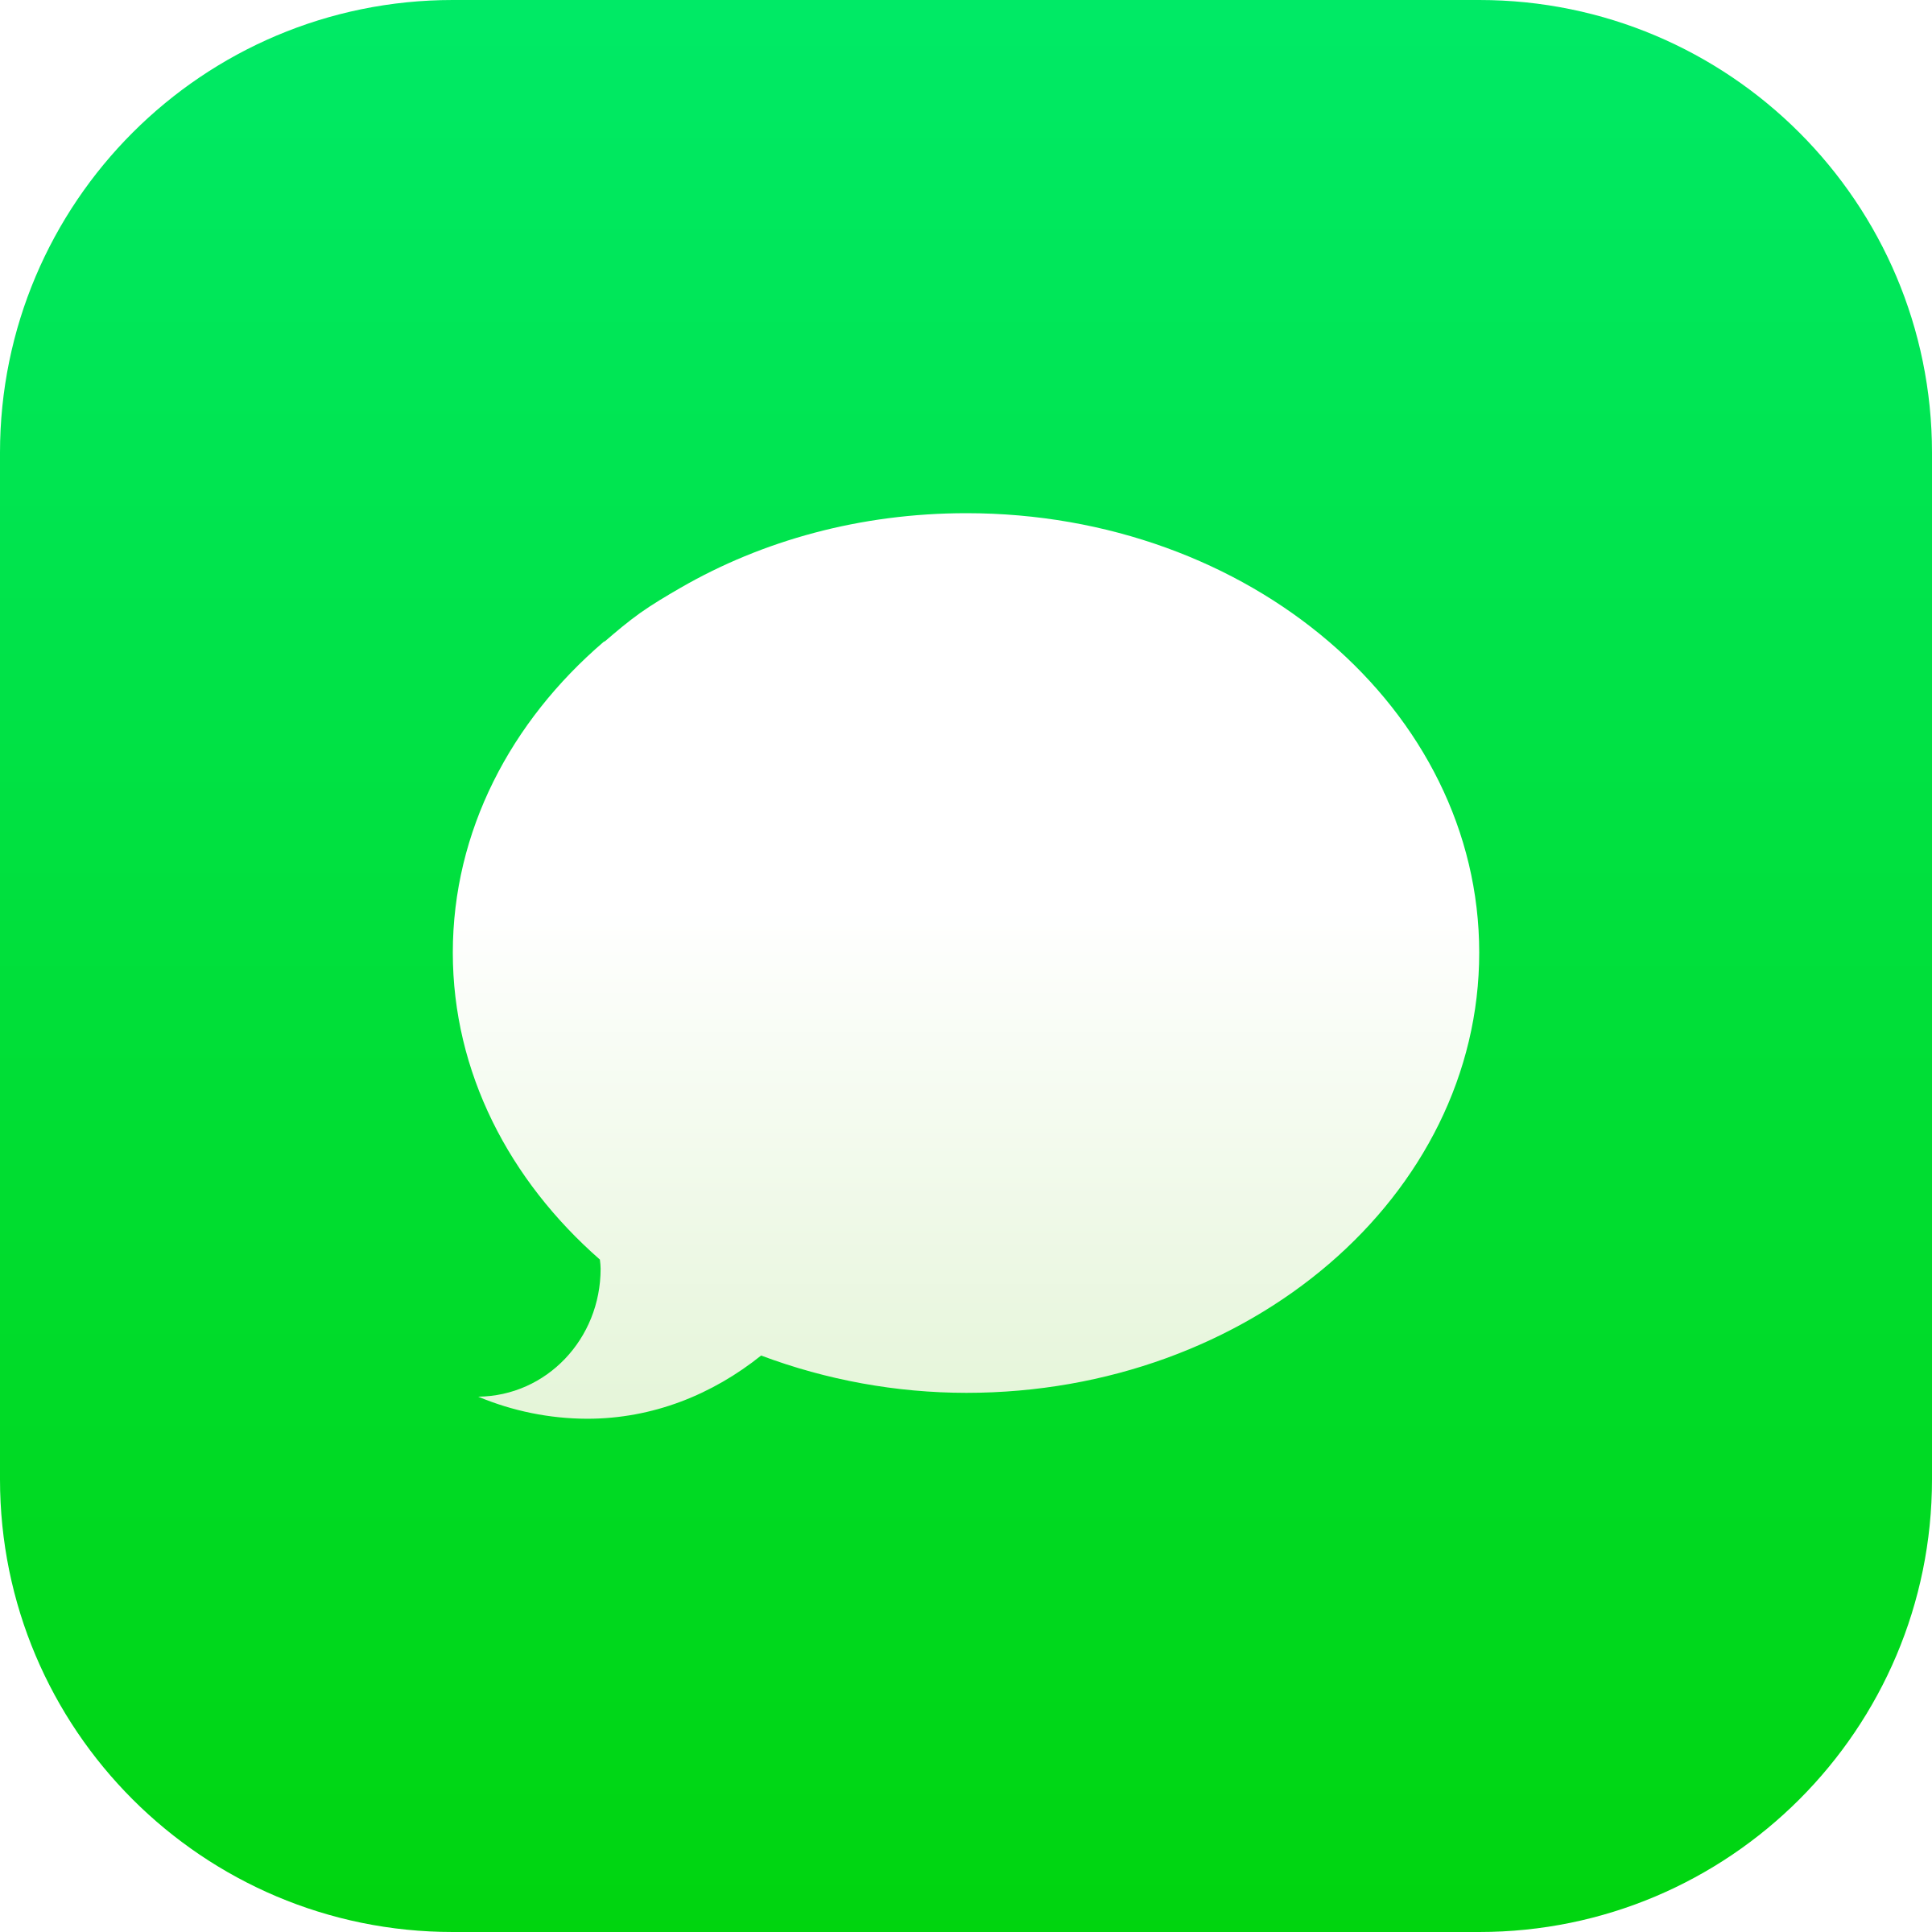 Messages iOS Logo PNG Transparent & SVG Vector.